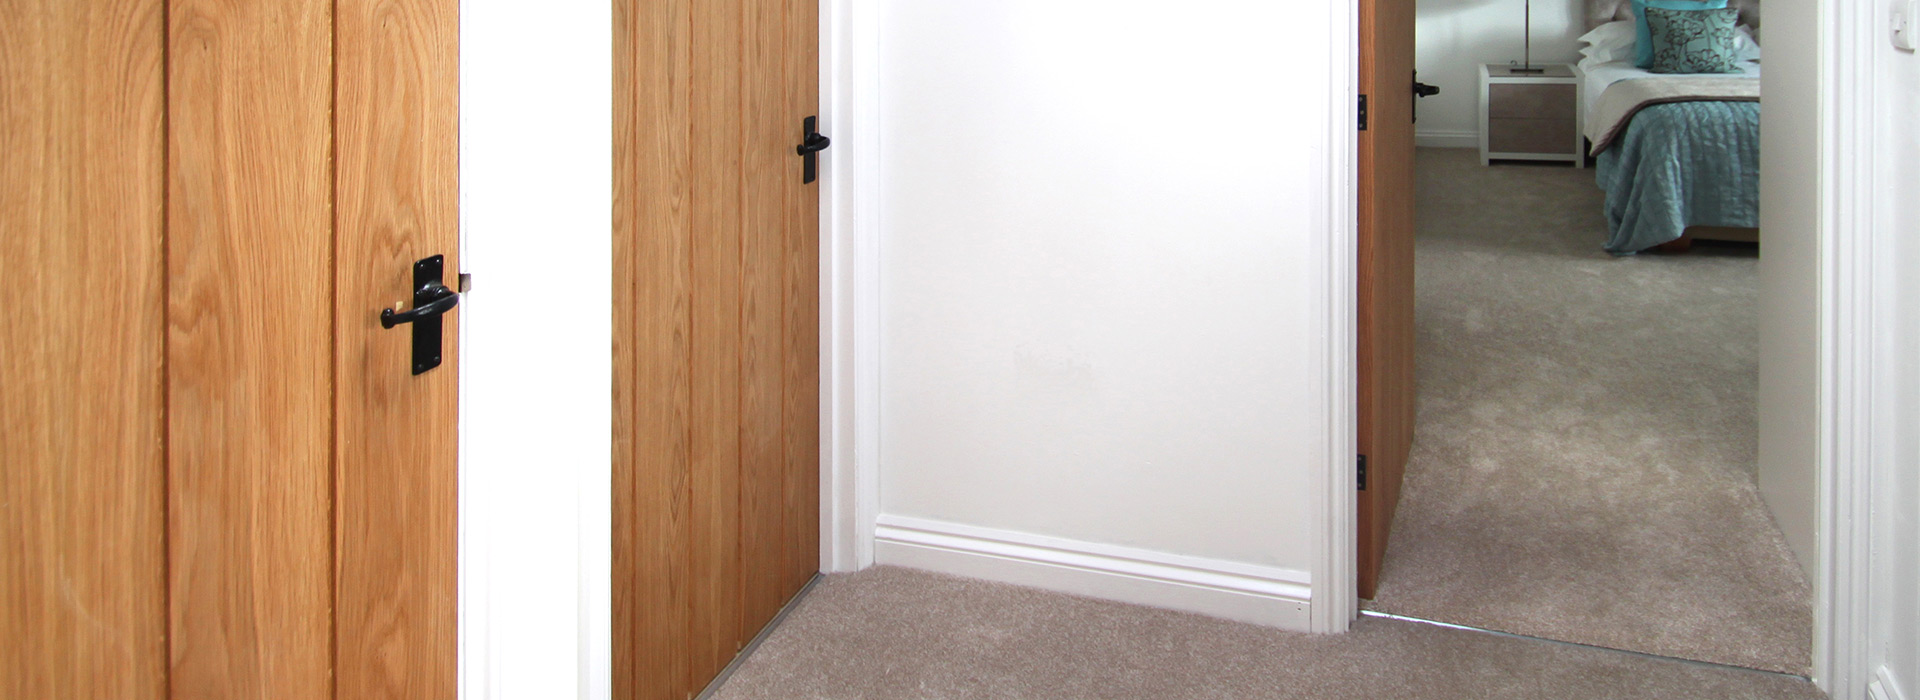 Countryman grooved doors for hallway